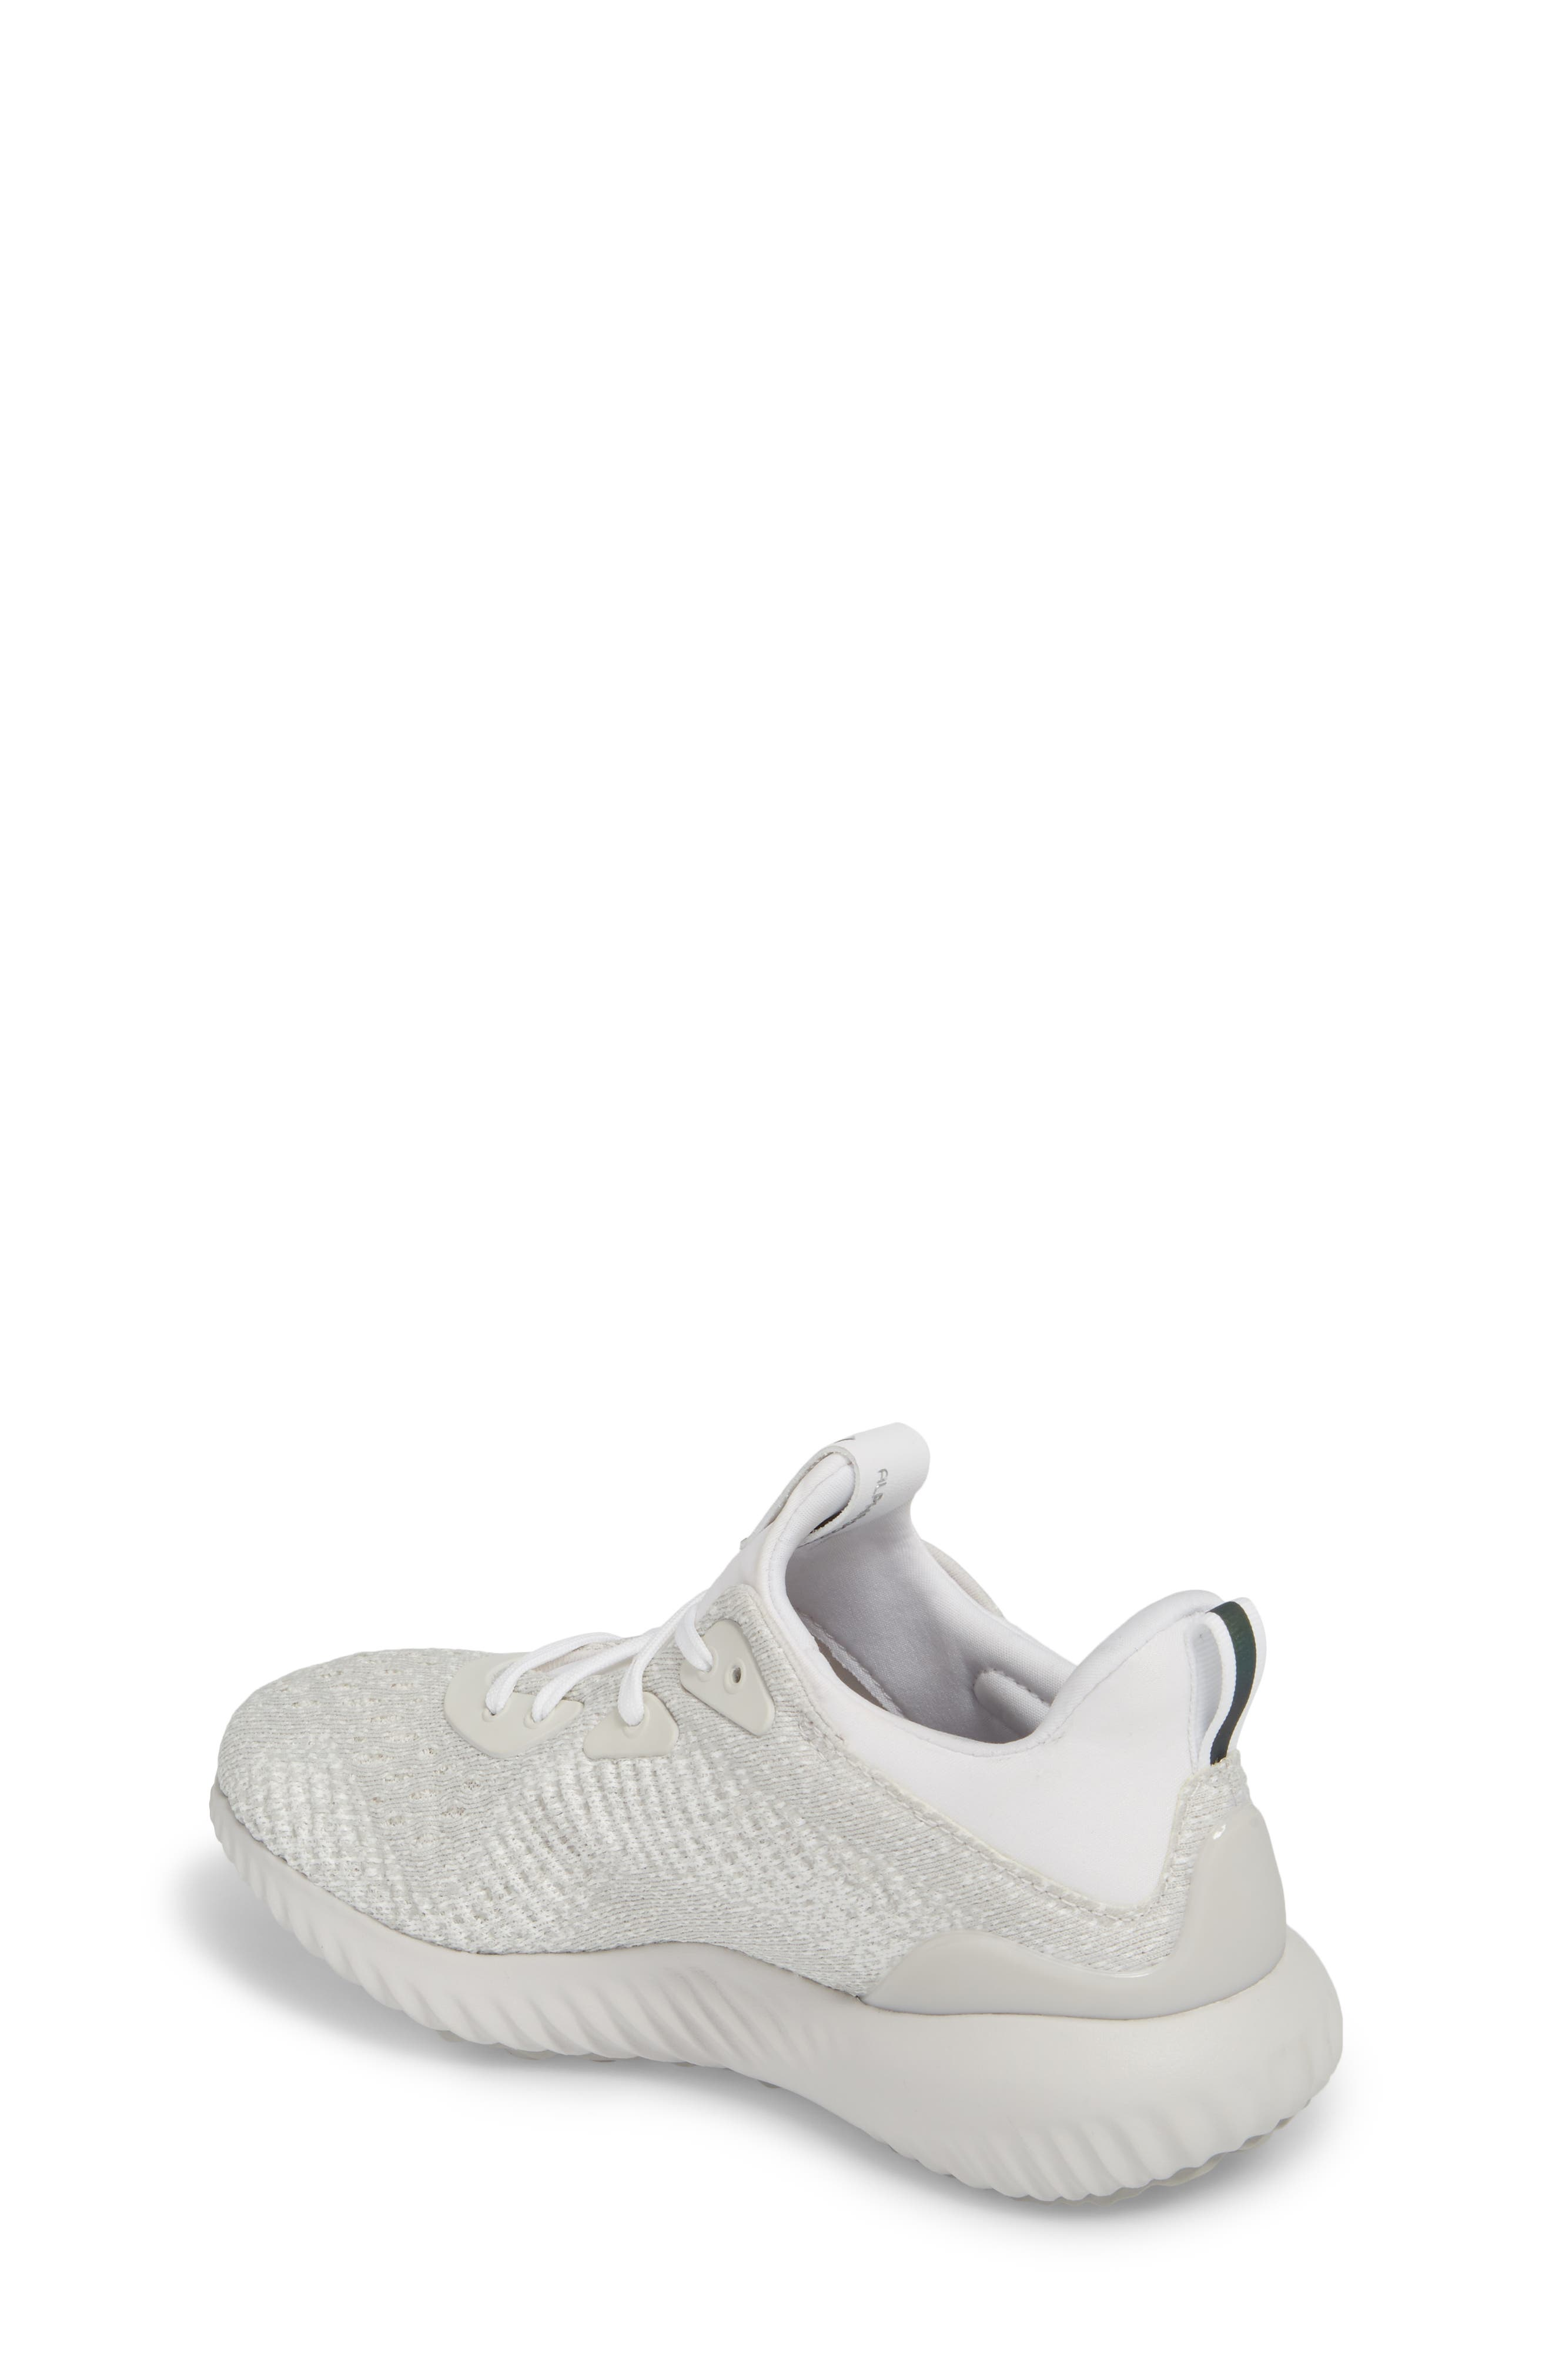 AlphaBounce EM Running Shoe,                             Alternate thumbnail 2, color,                             Grey / Silver Met / Non-Dyed